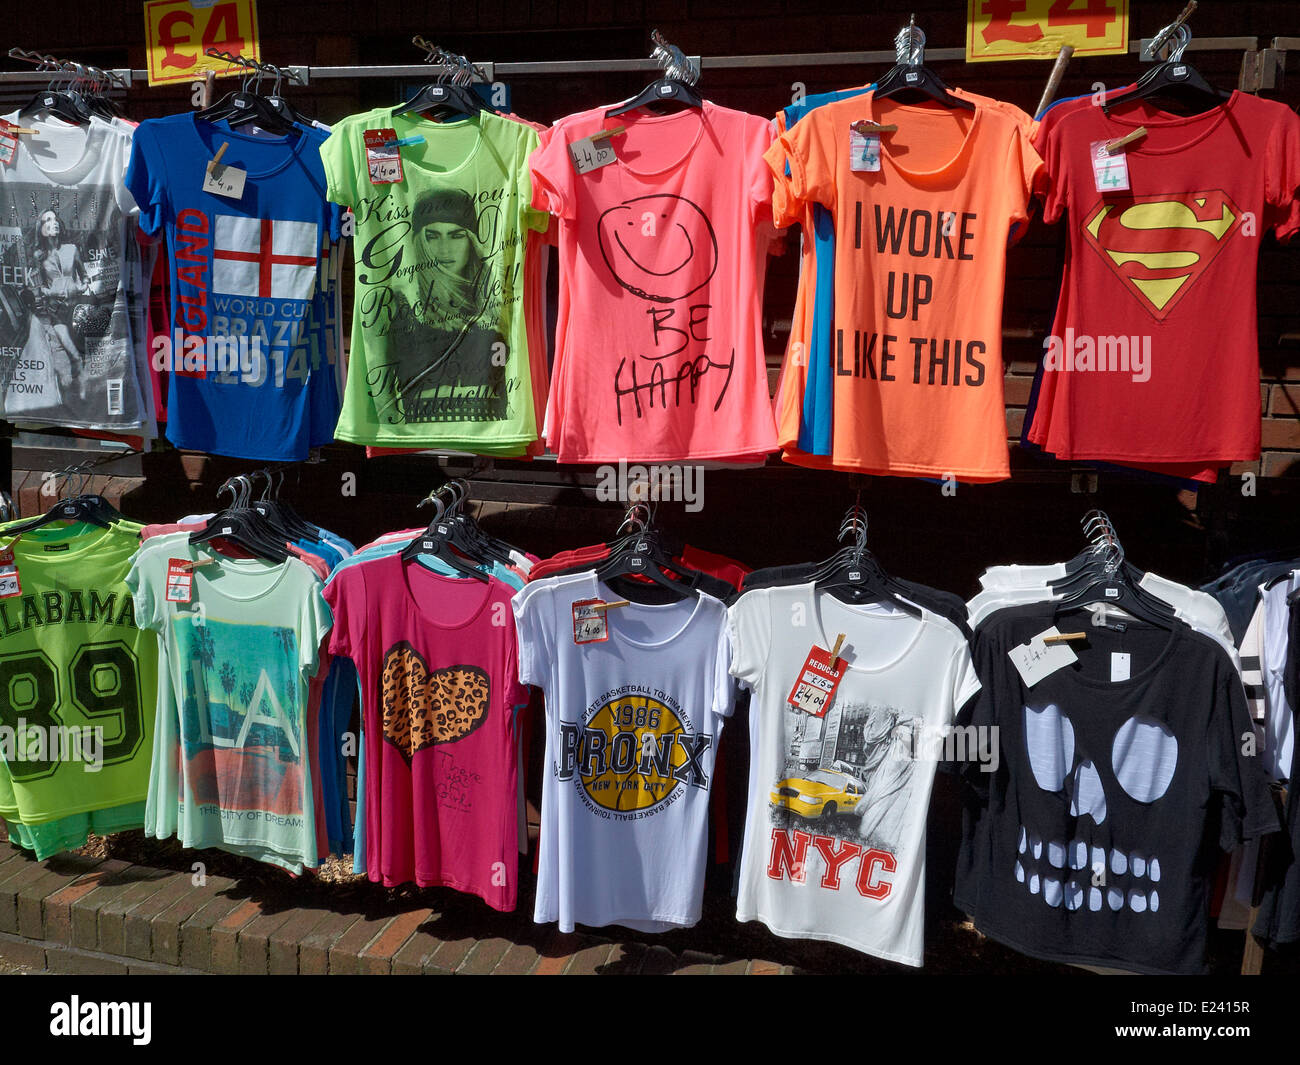 Trendy Printed T Shirts For Sale In Sandbach Cheshire Uk Stock Photo